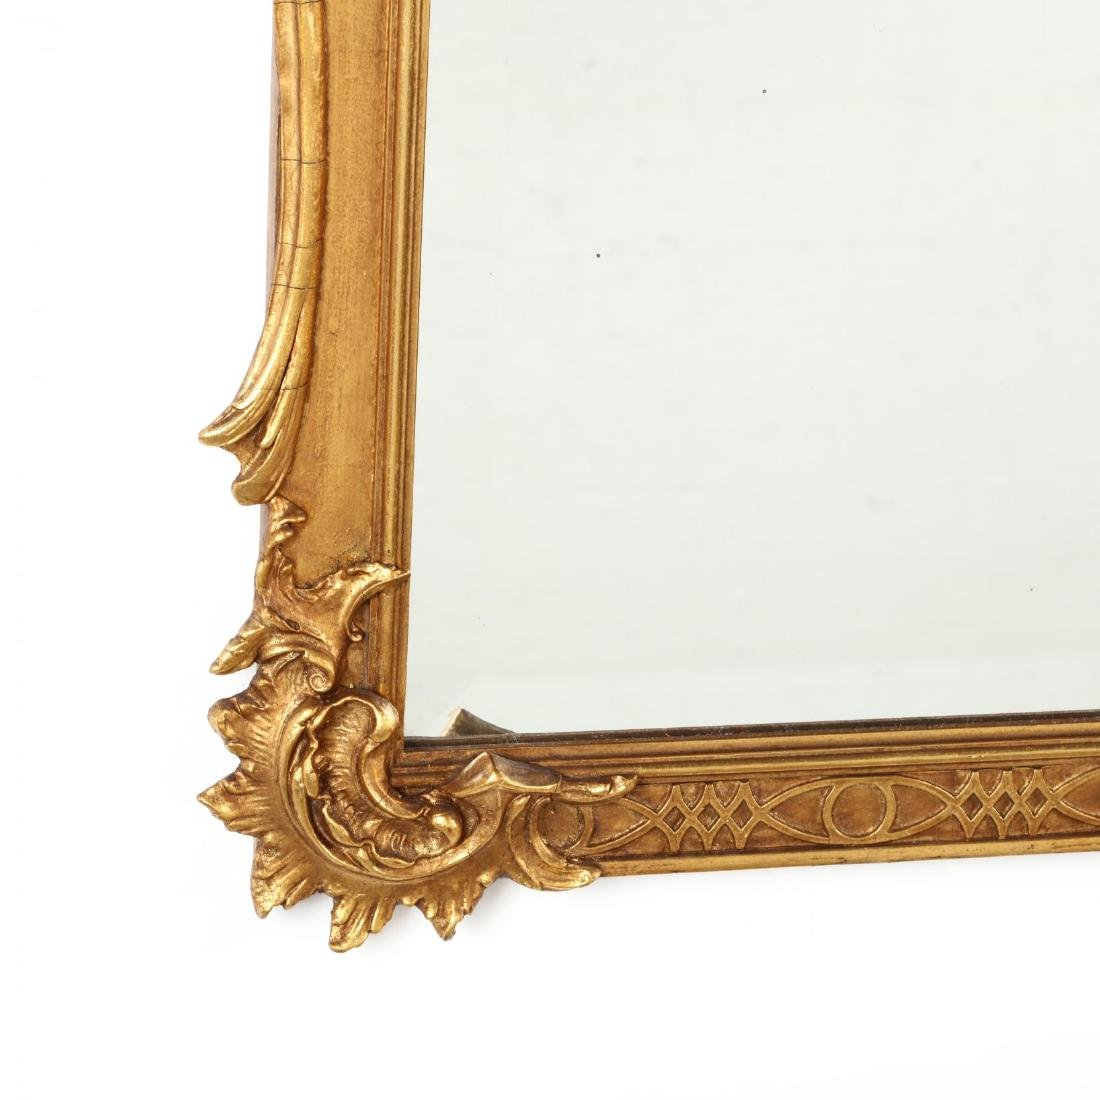 Rococo Style Carved and Gilt Over Mantel Mirror - 3